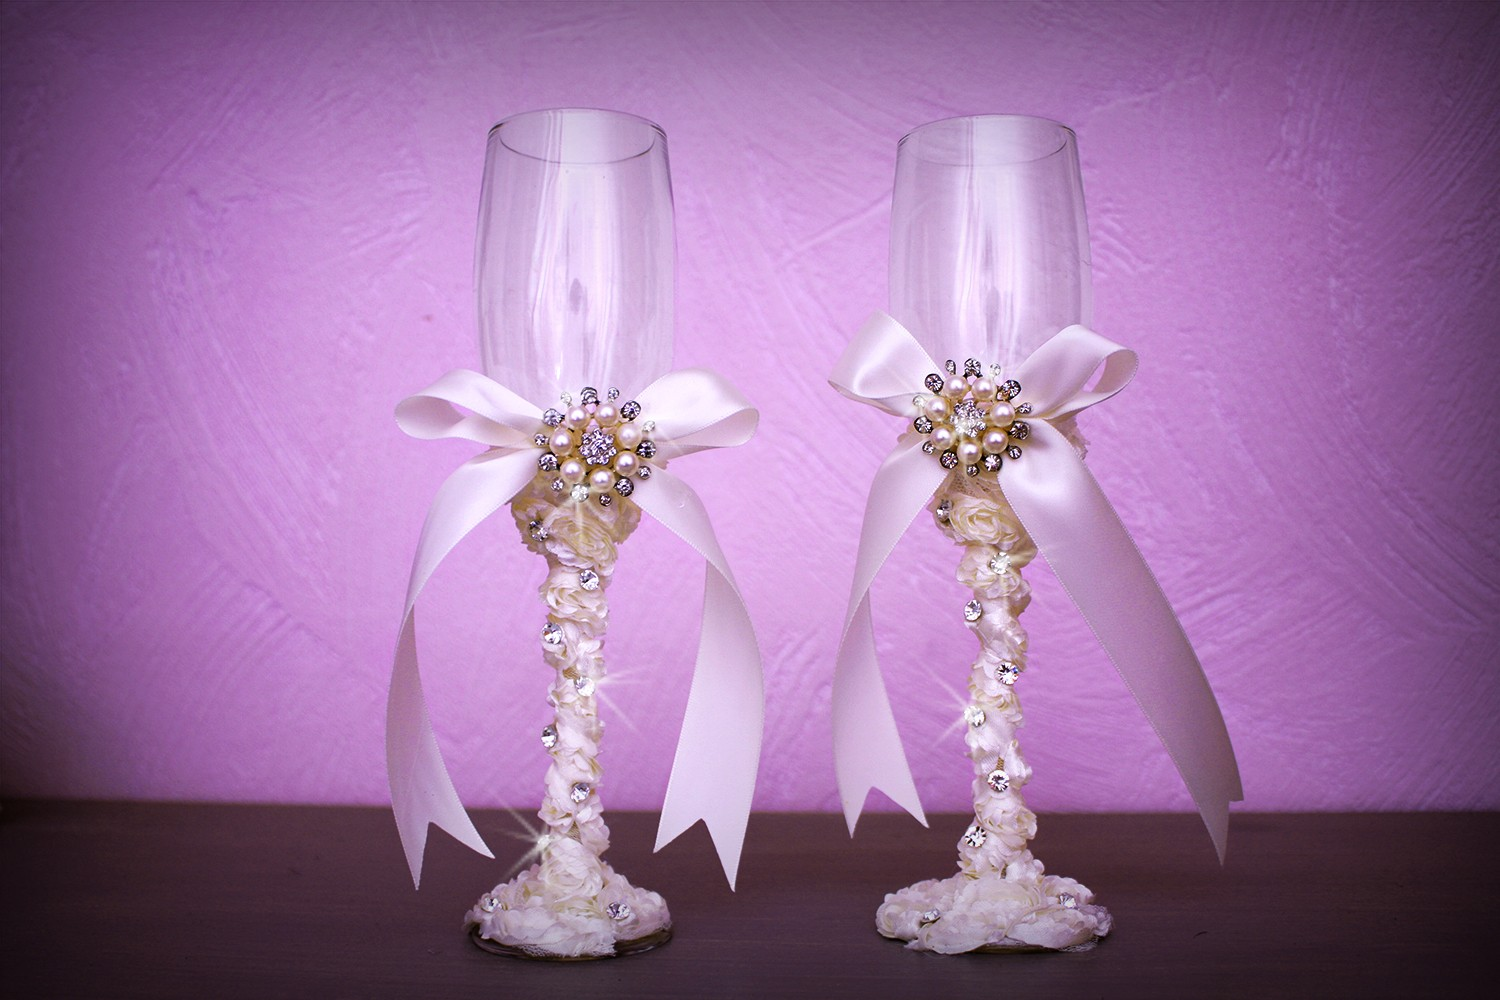 Flute coupe champagne mariage strass ruban perle ivoire - Coupe de mariage ...